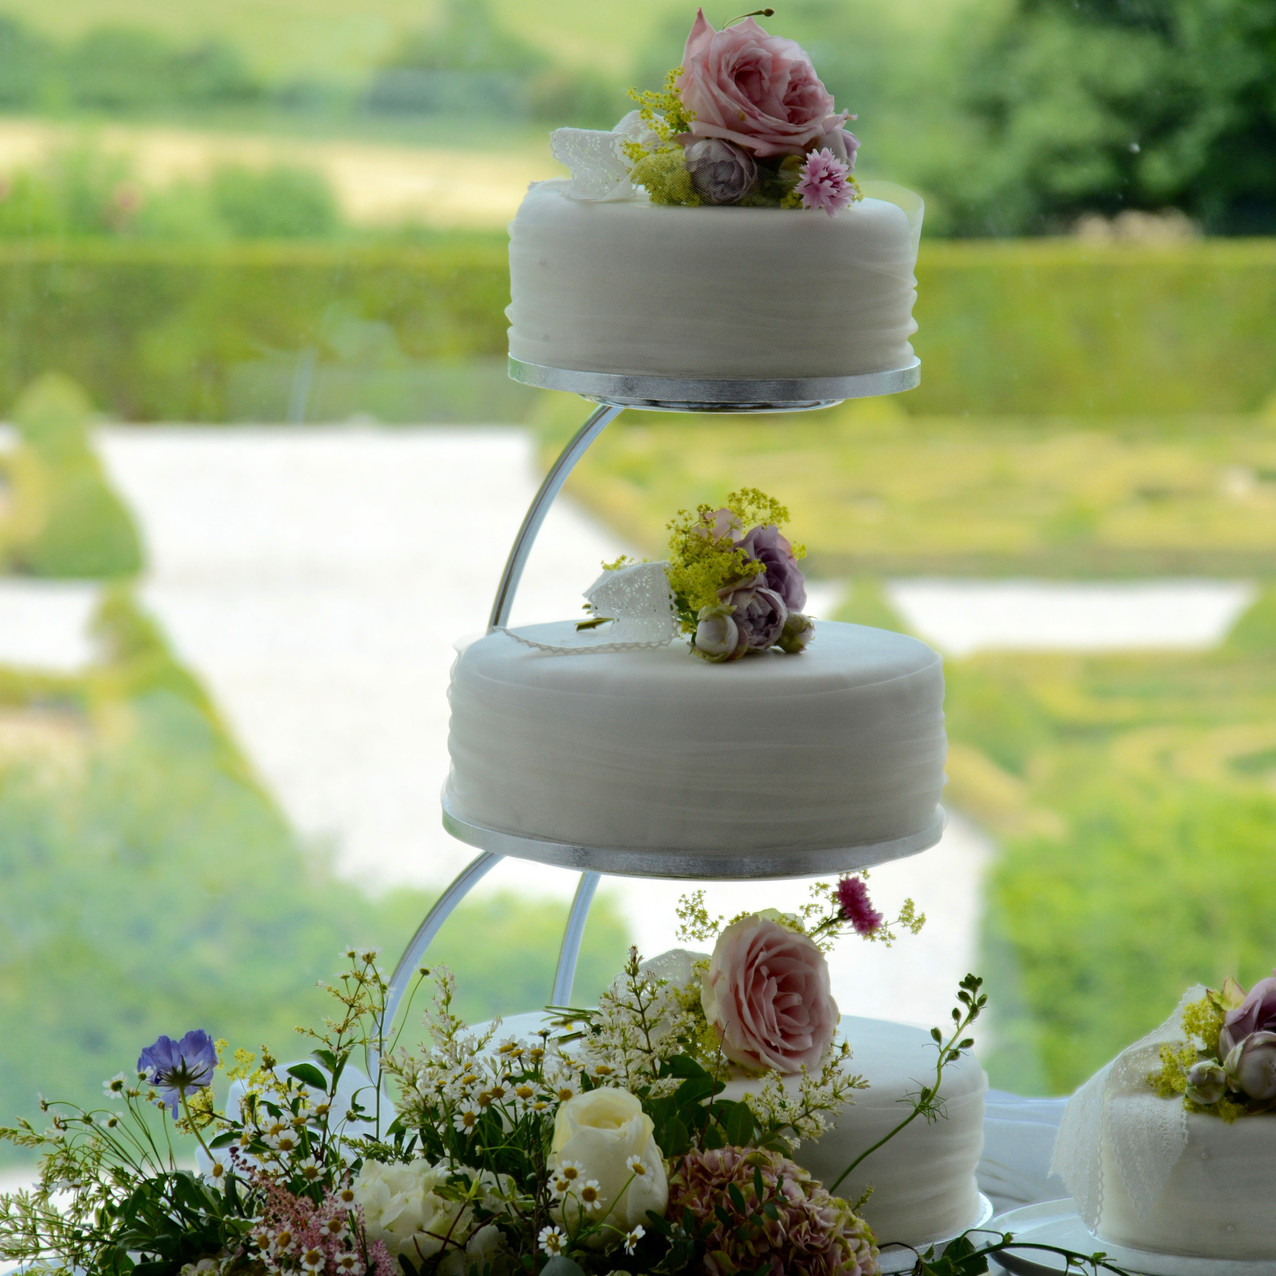 Wedding cake with corsages of flowers and view of parterre garden